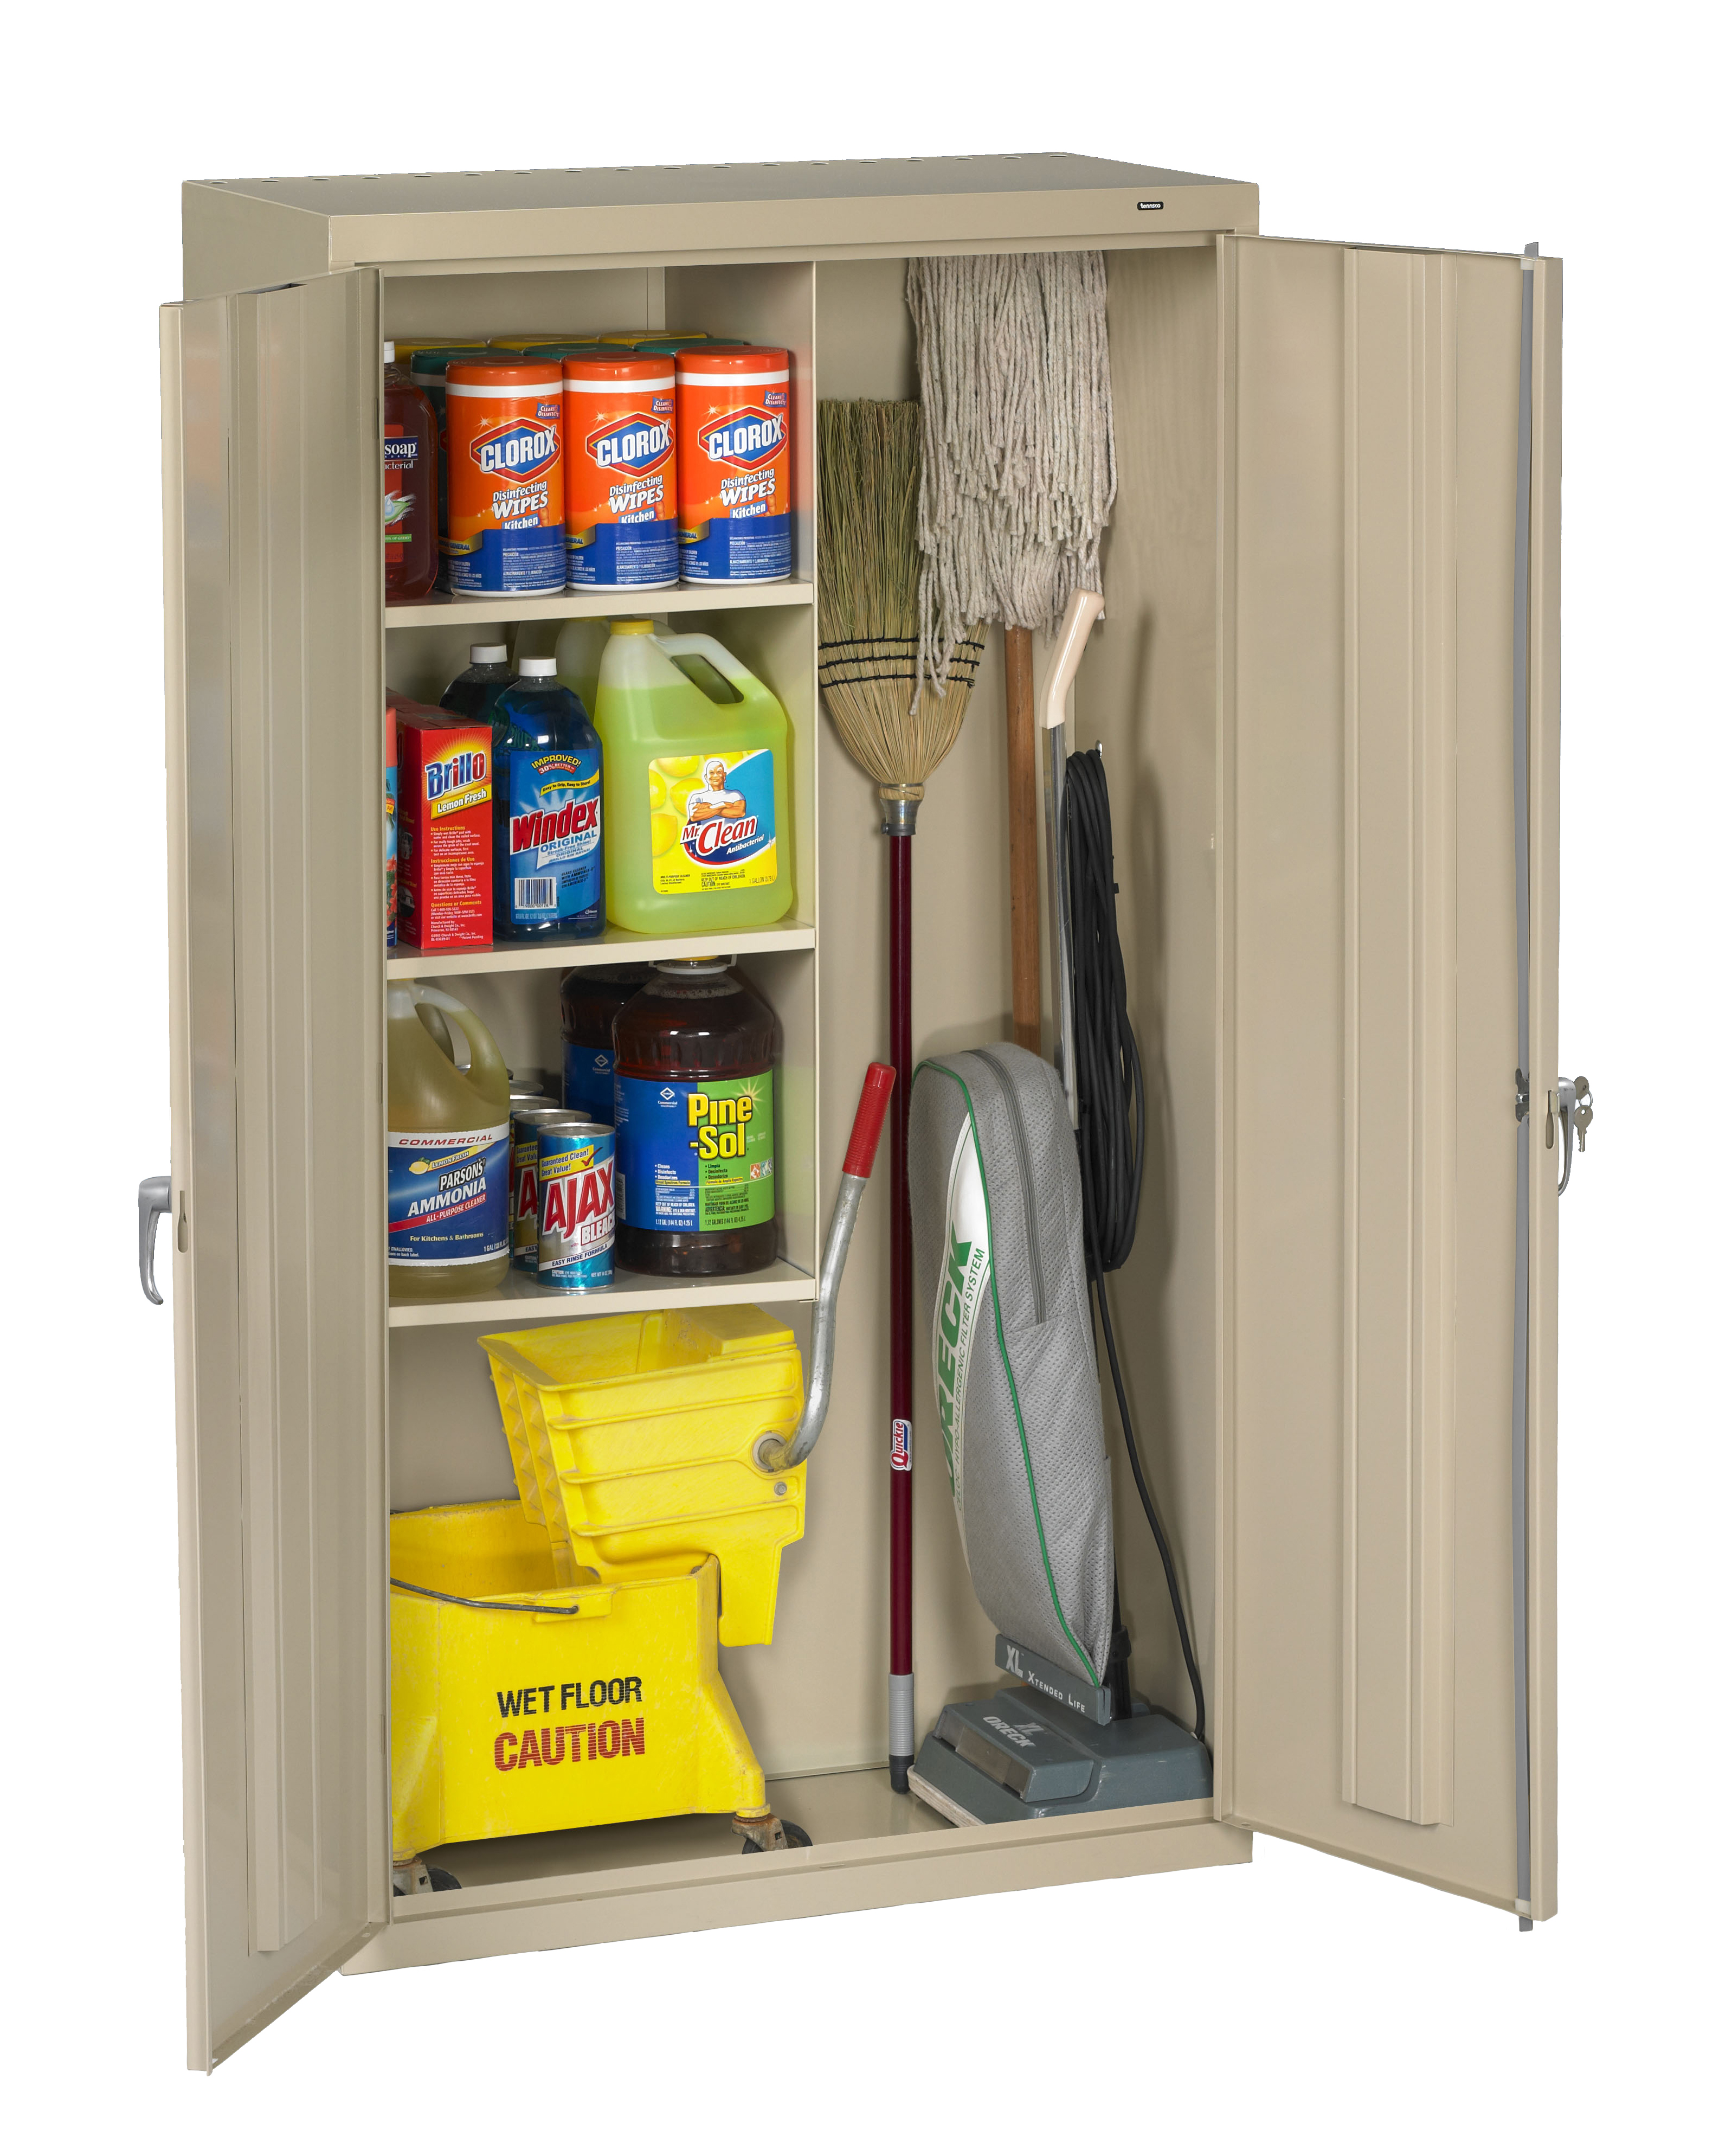 shelves typical linen shelving cupboard liner spacing rubbermaid closet shelf cabinet kit